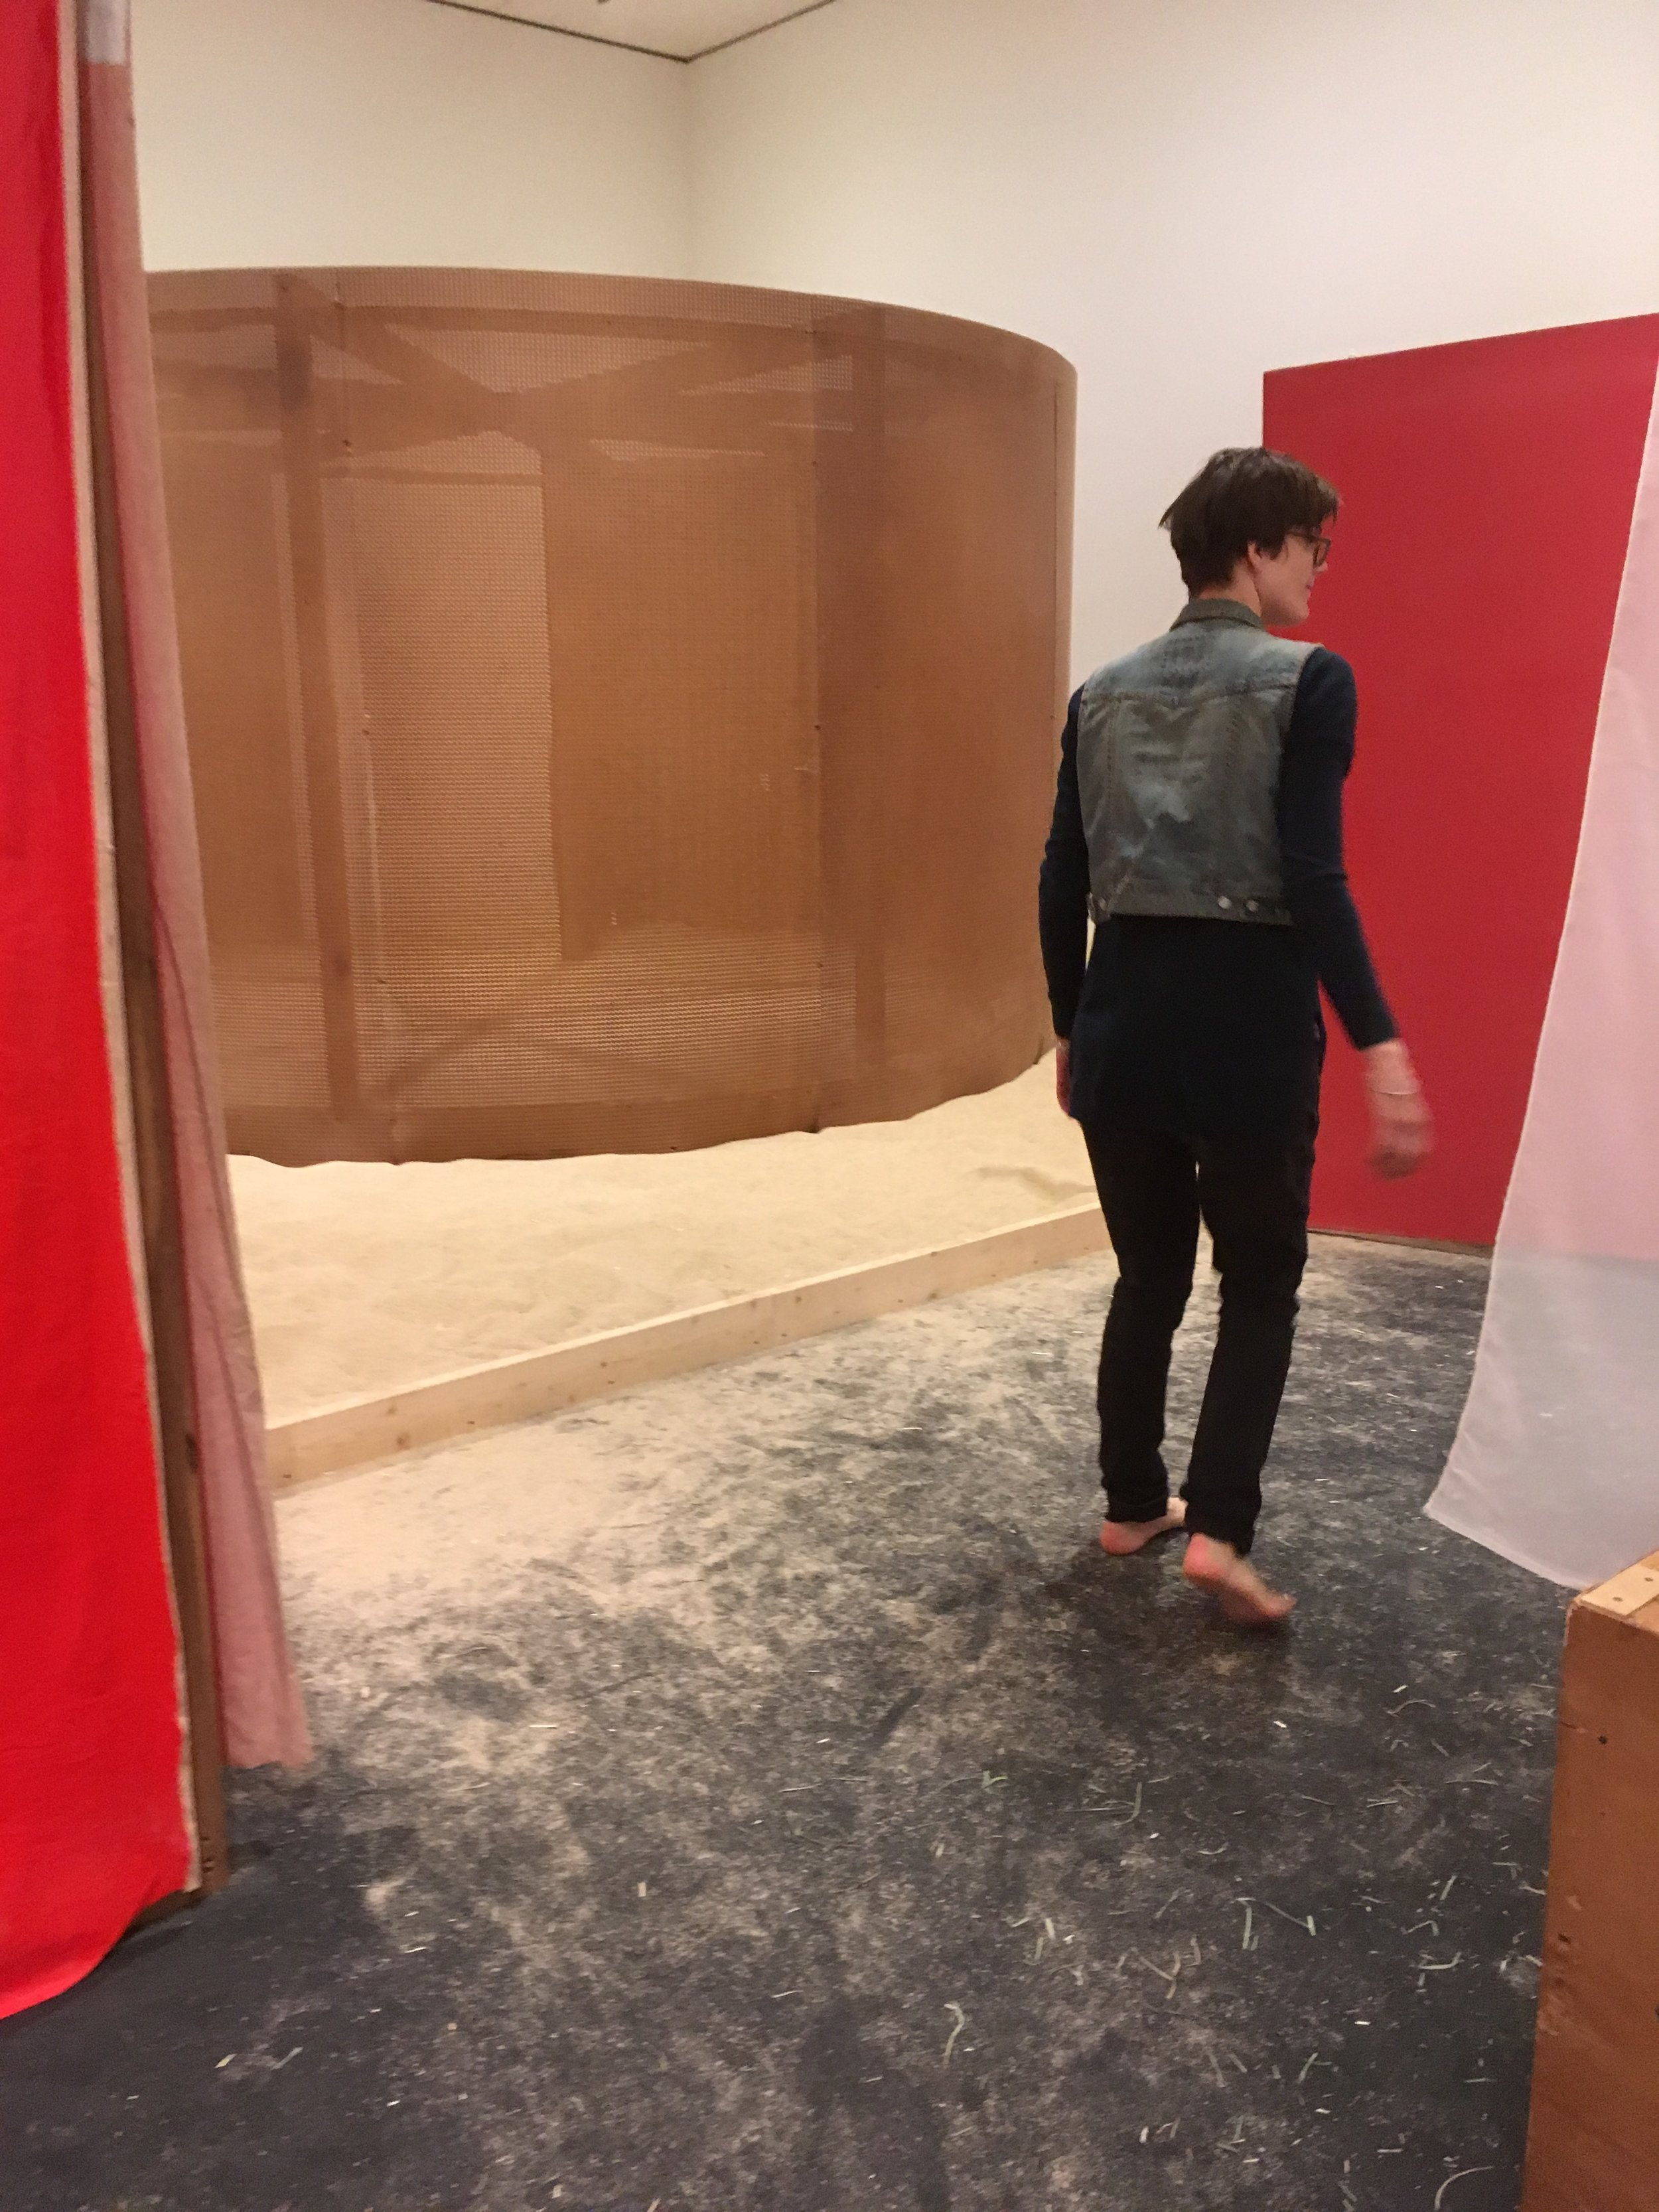 Barefoot in the museum! By far my favorite show last year was the  Hélio Oiticica  show at the  Art Institute  - it was magical!